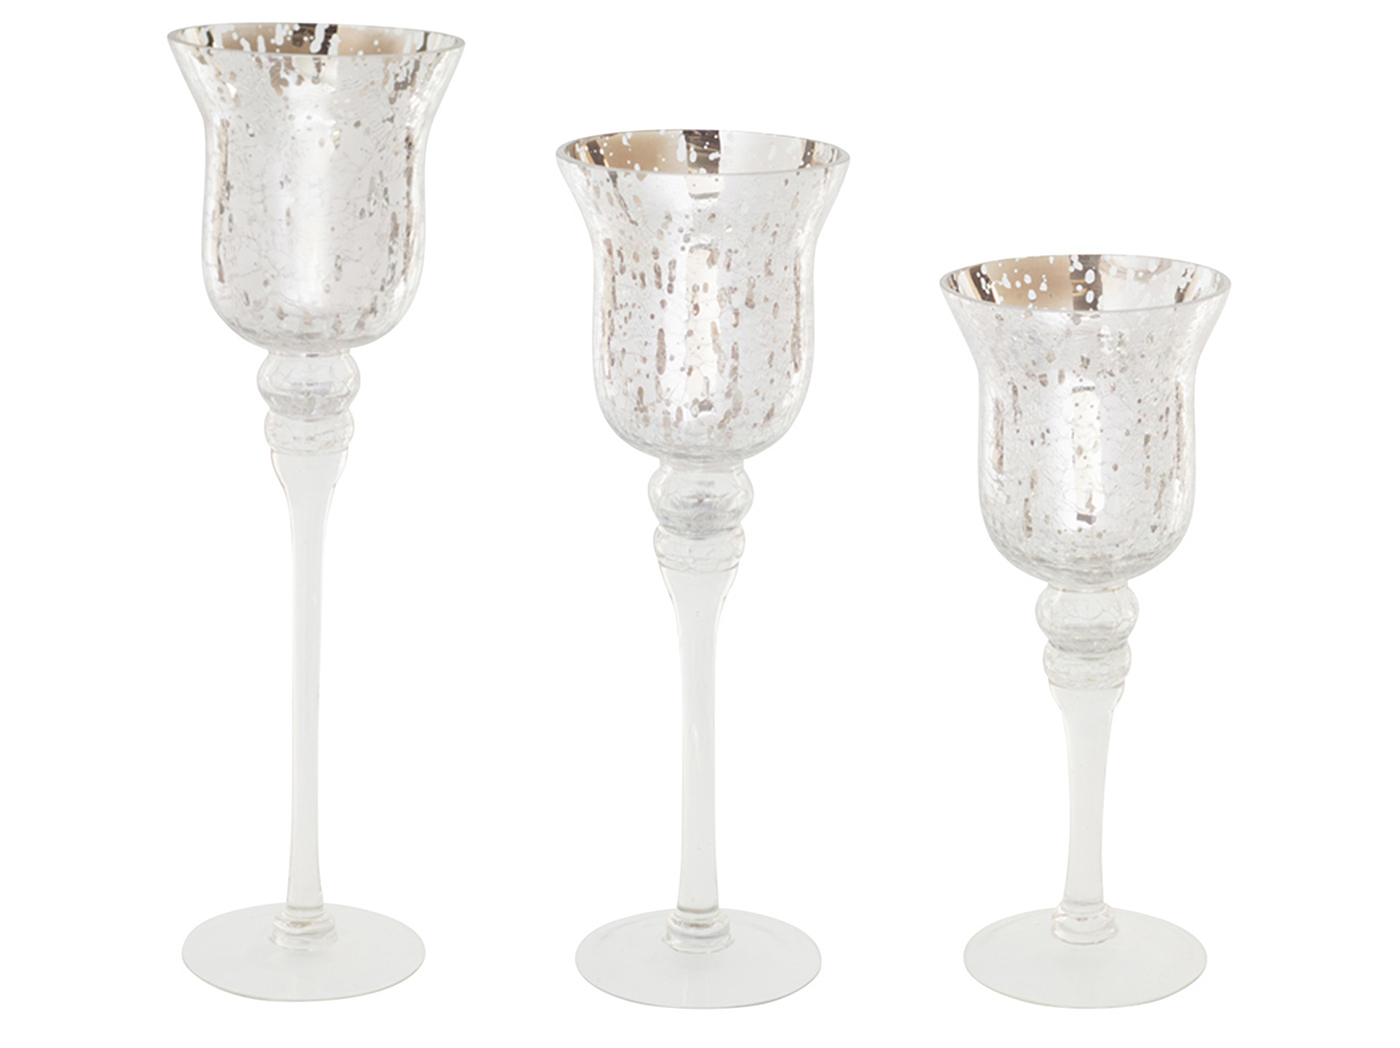 "Set of 3 Silver Mercury Glass Candleholders 12-13""H"